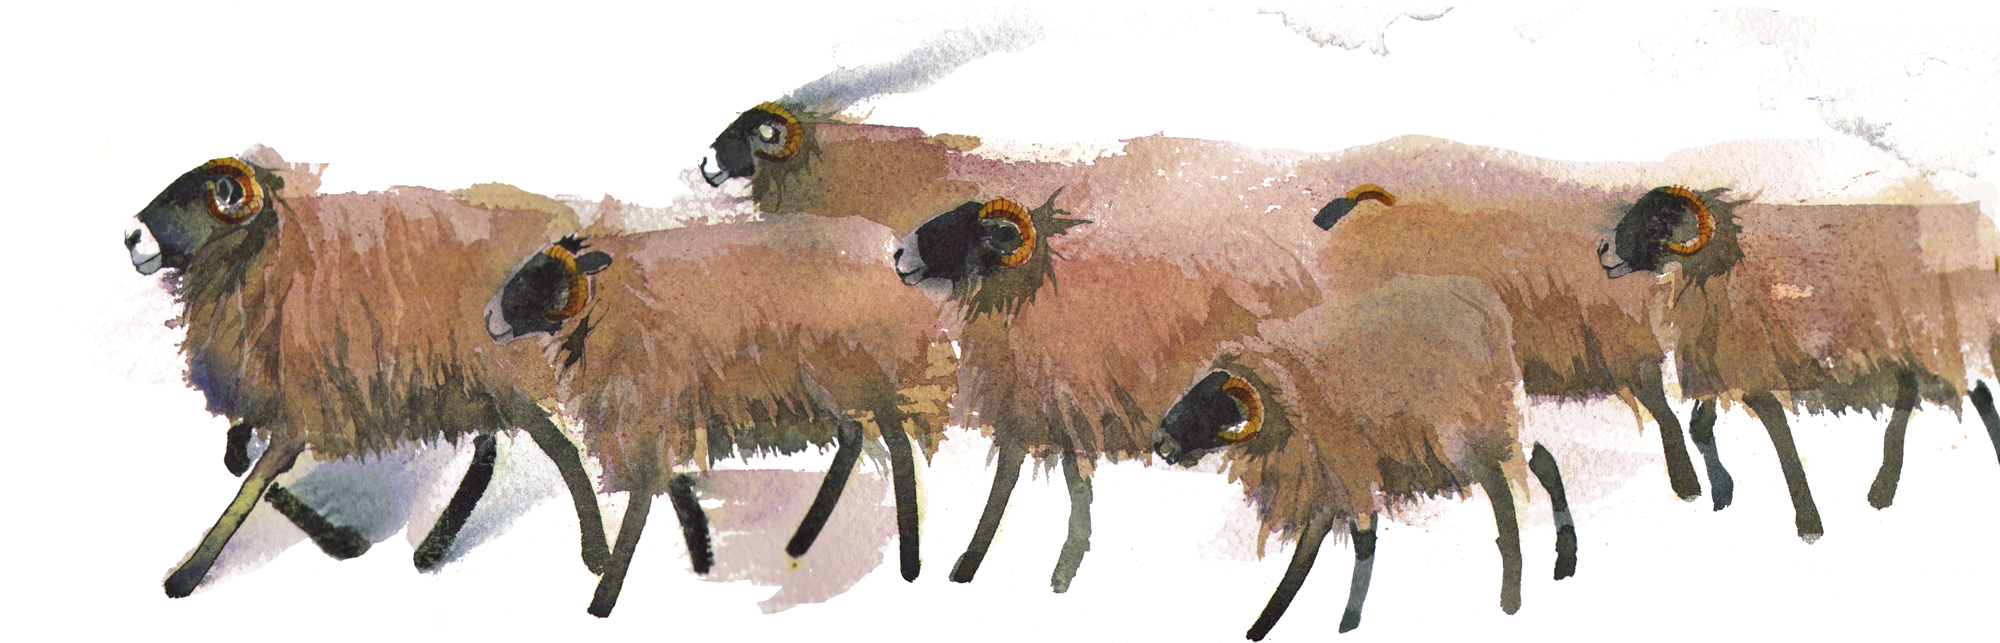 Swale Sheep, New image